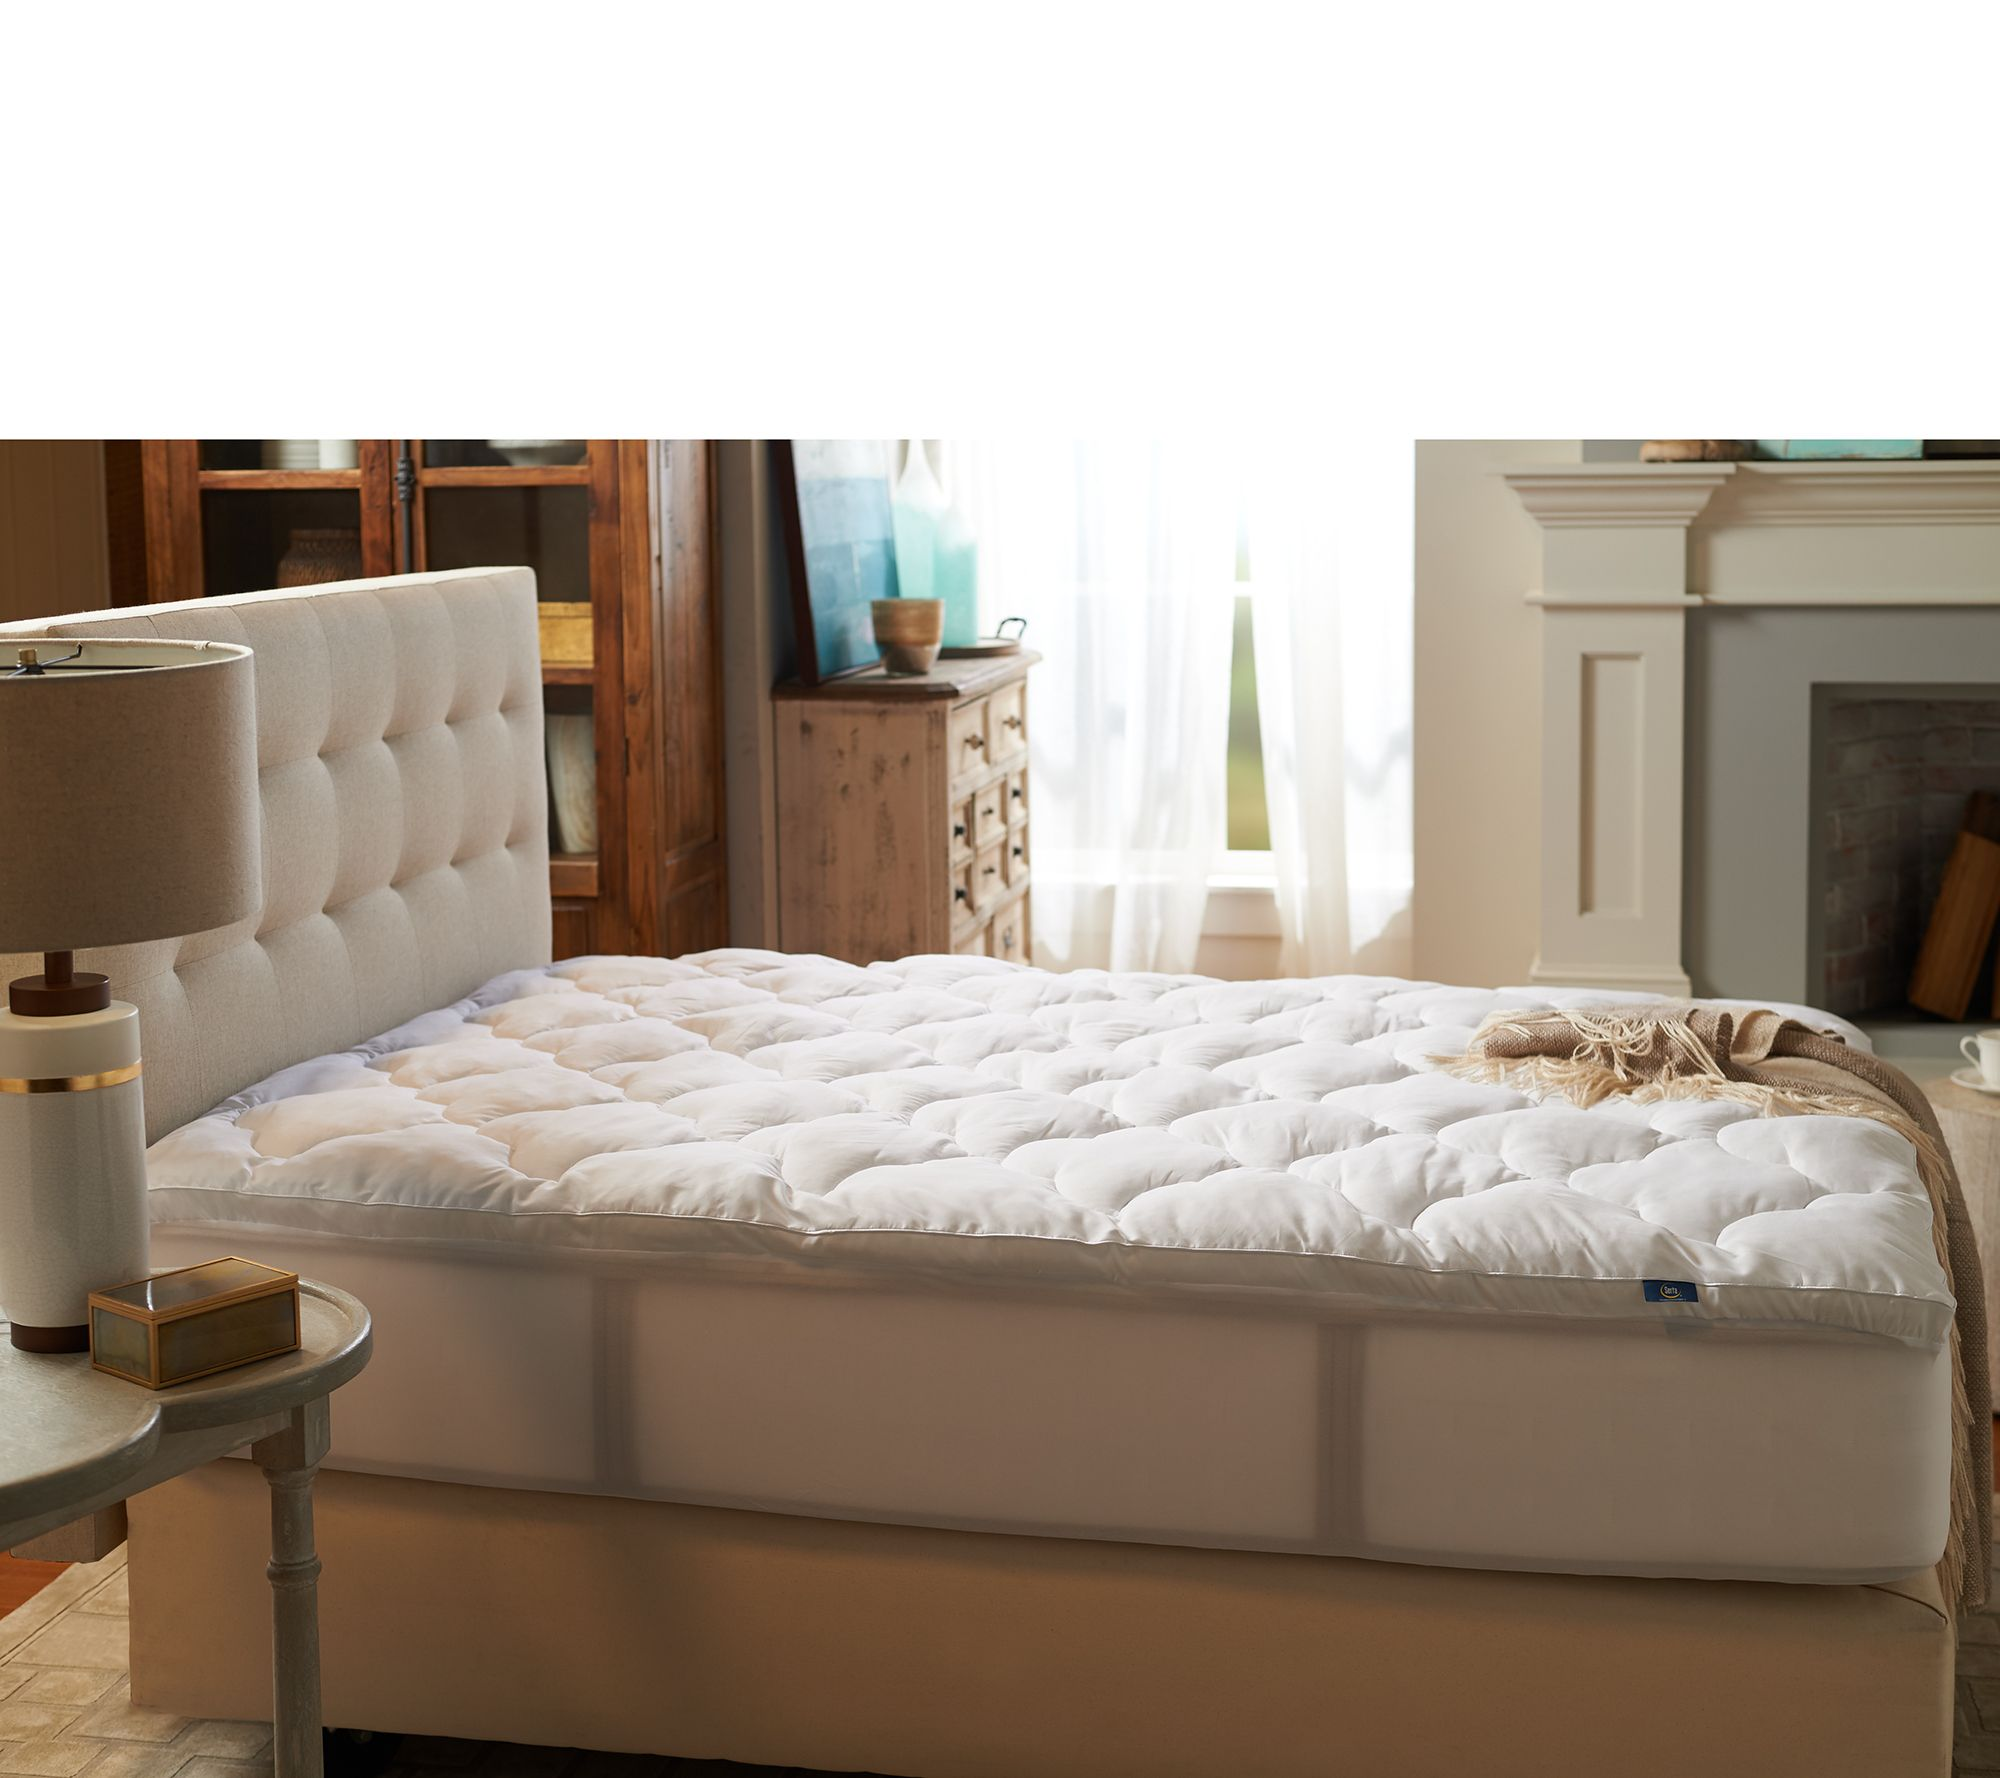 Serta Full Fiber Fill Mattress Topper with Stain Repellency Page